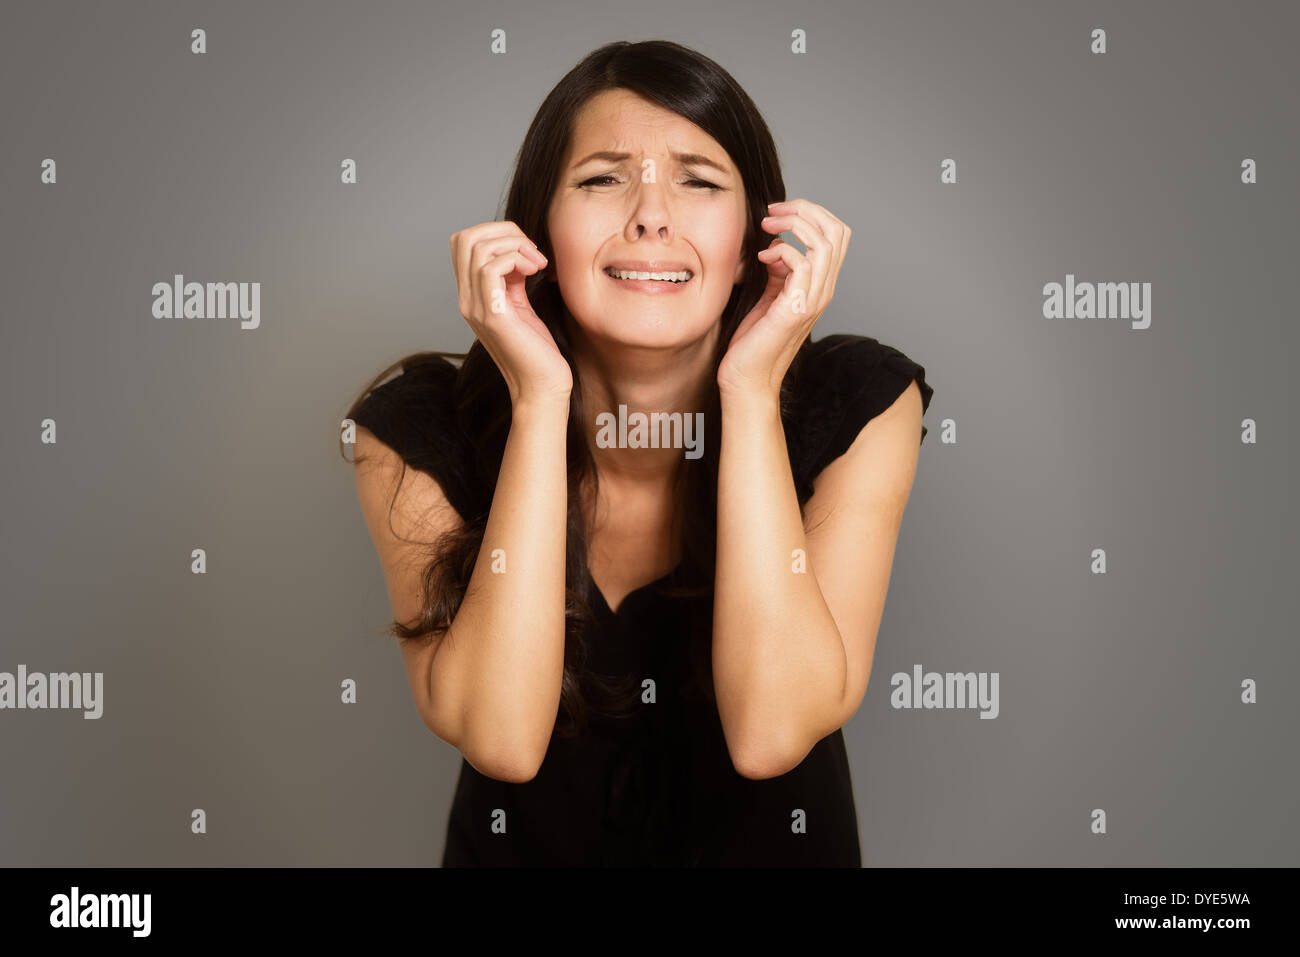 Distraught tearful young woman with her hands clasped in anguish standing with downcast eyes against a white studio background - Stock Image